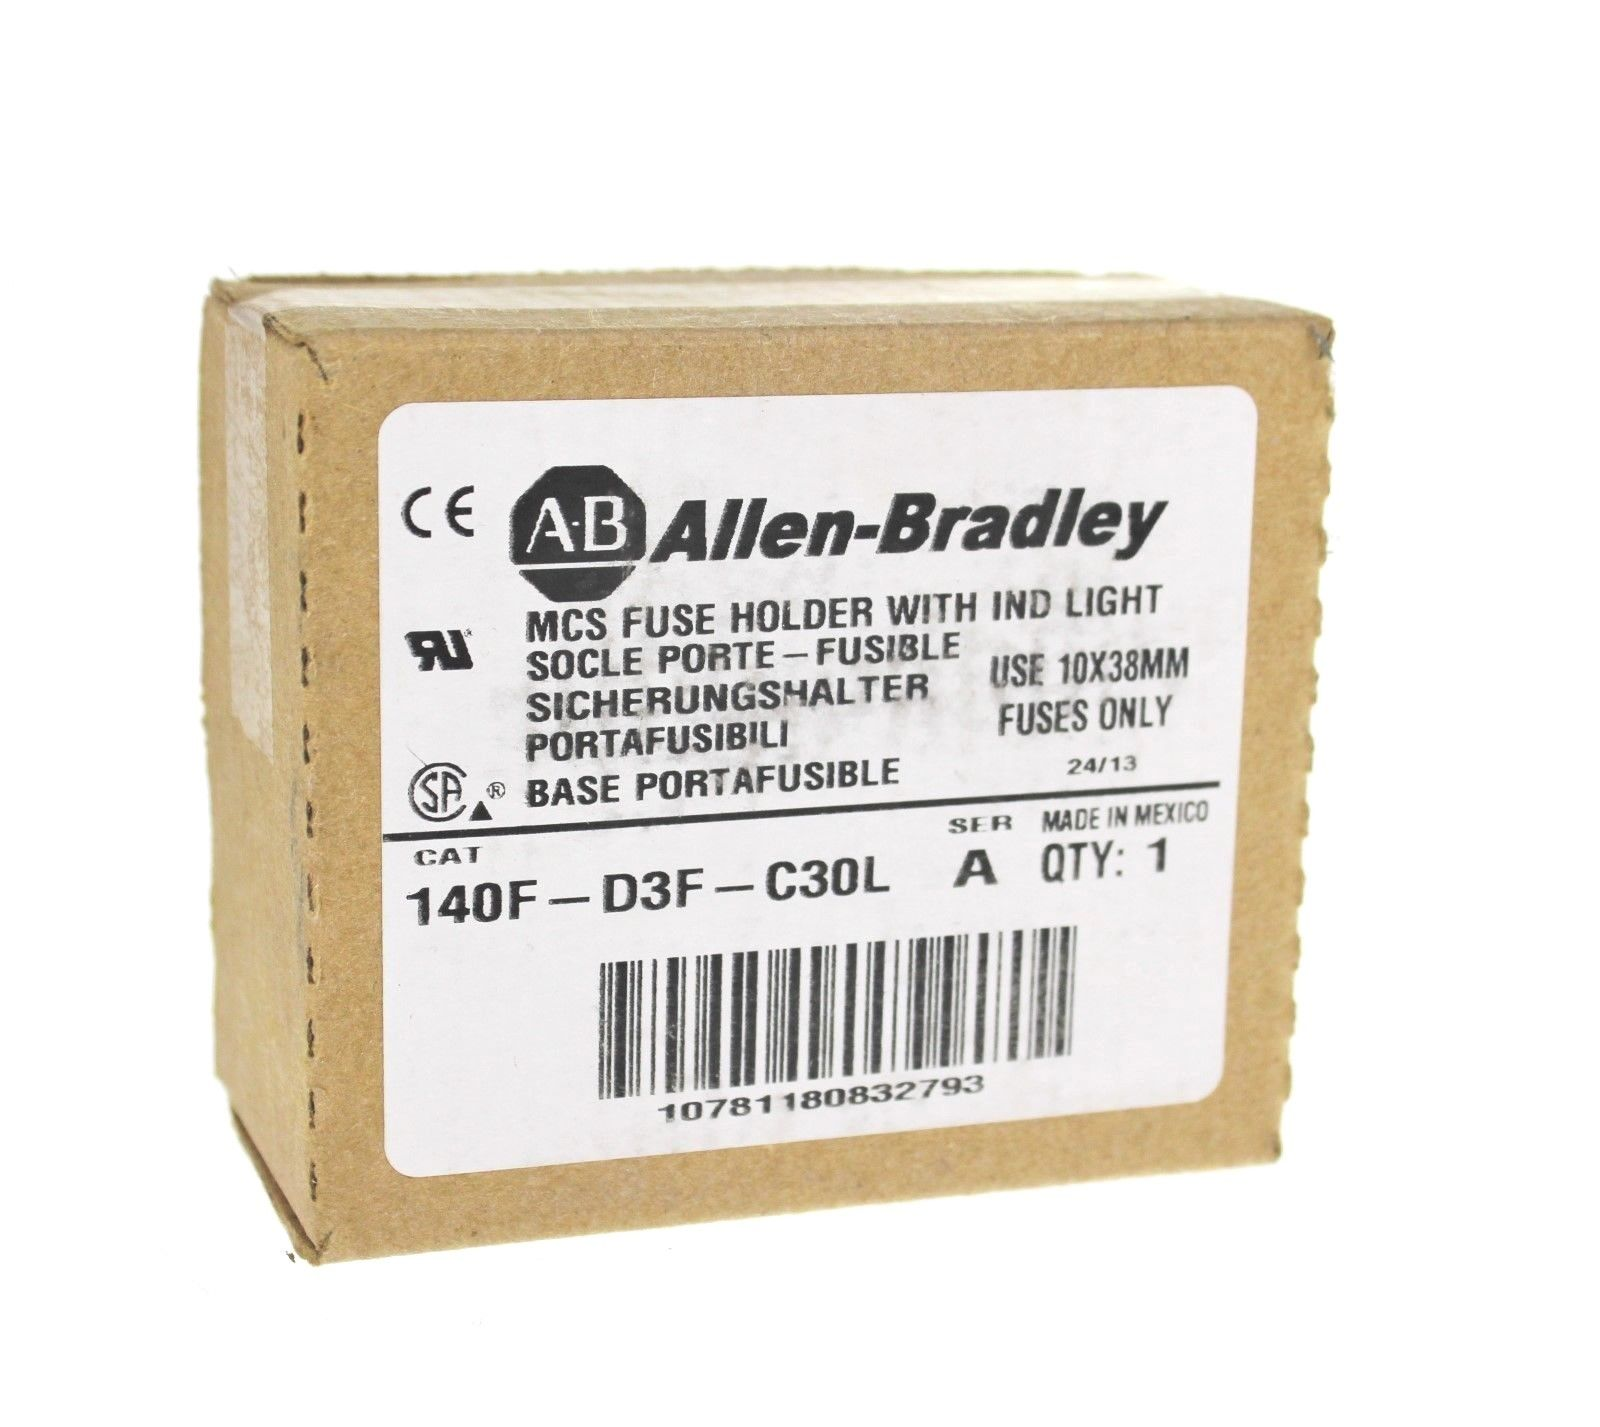 New Allen Bradley 140F-D3F-C30L /A MCS Fuse Holder w/Indicator Light